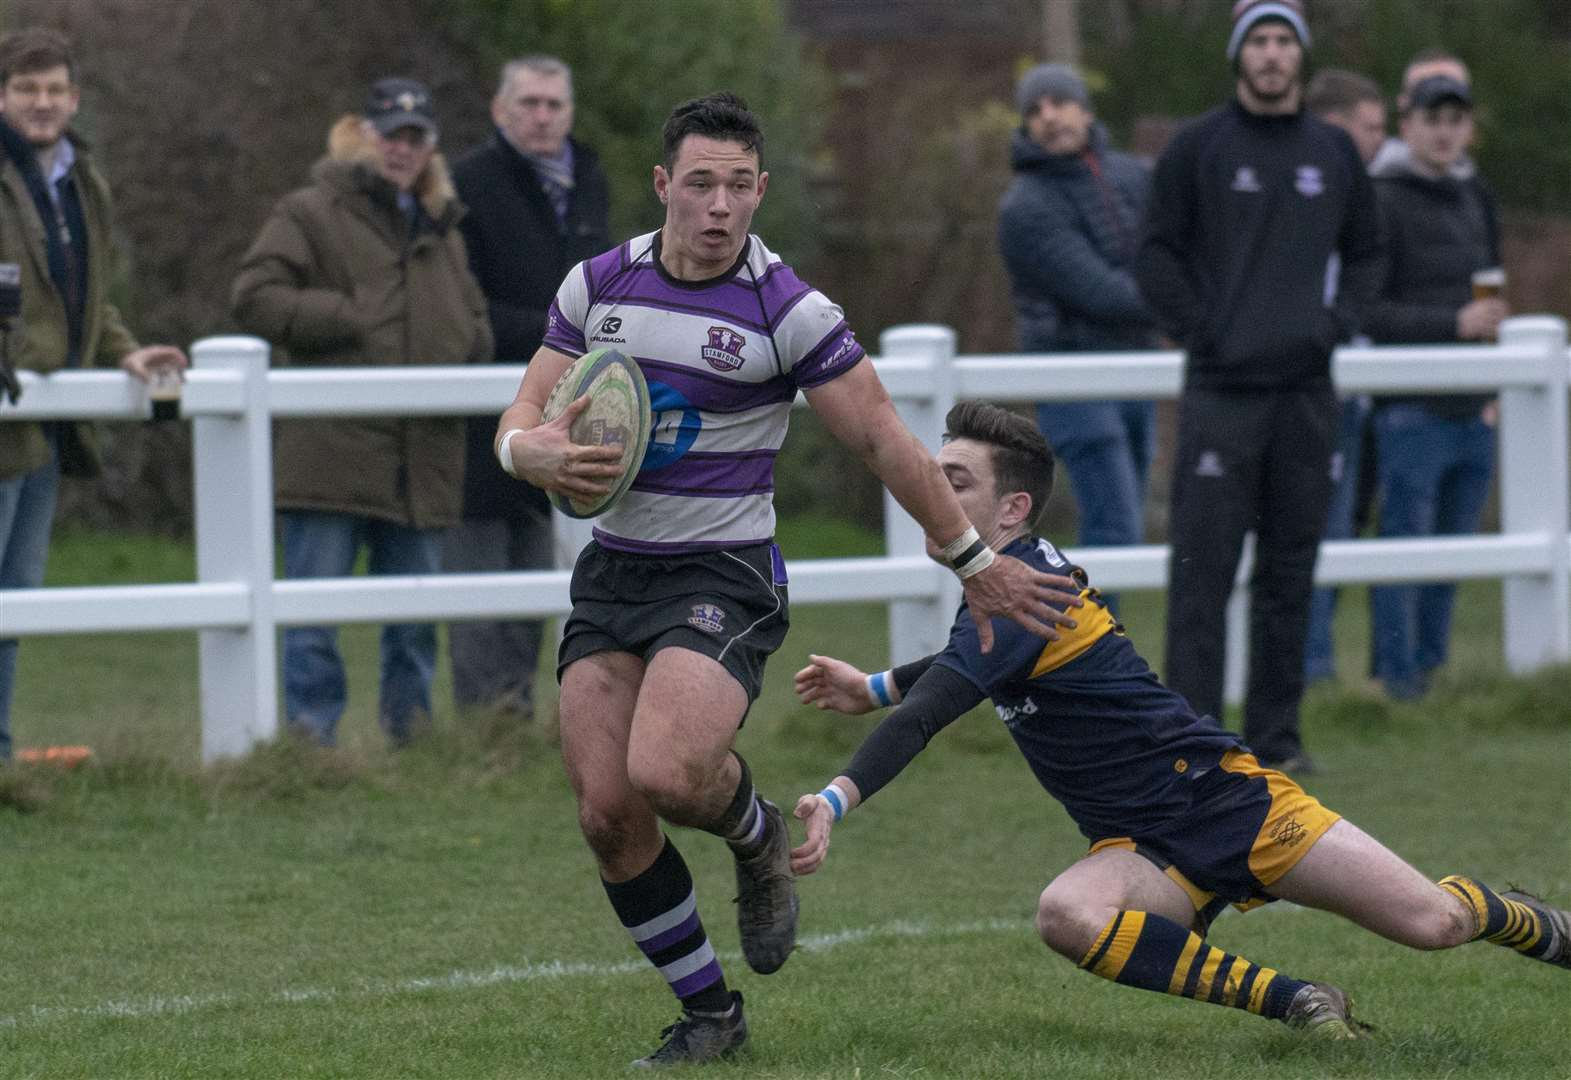 RUGBY UNION: Derby delight sees Stamford secure sixth successive bonus point victory